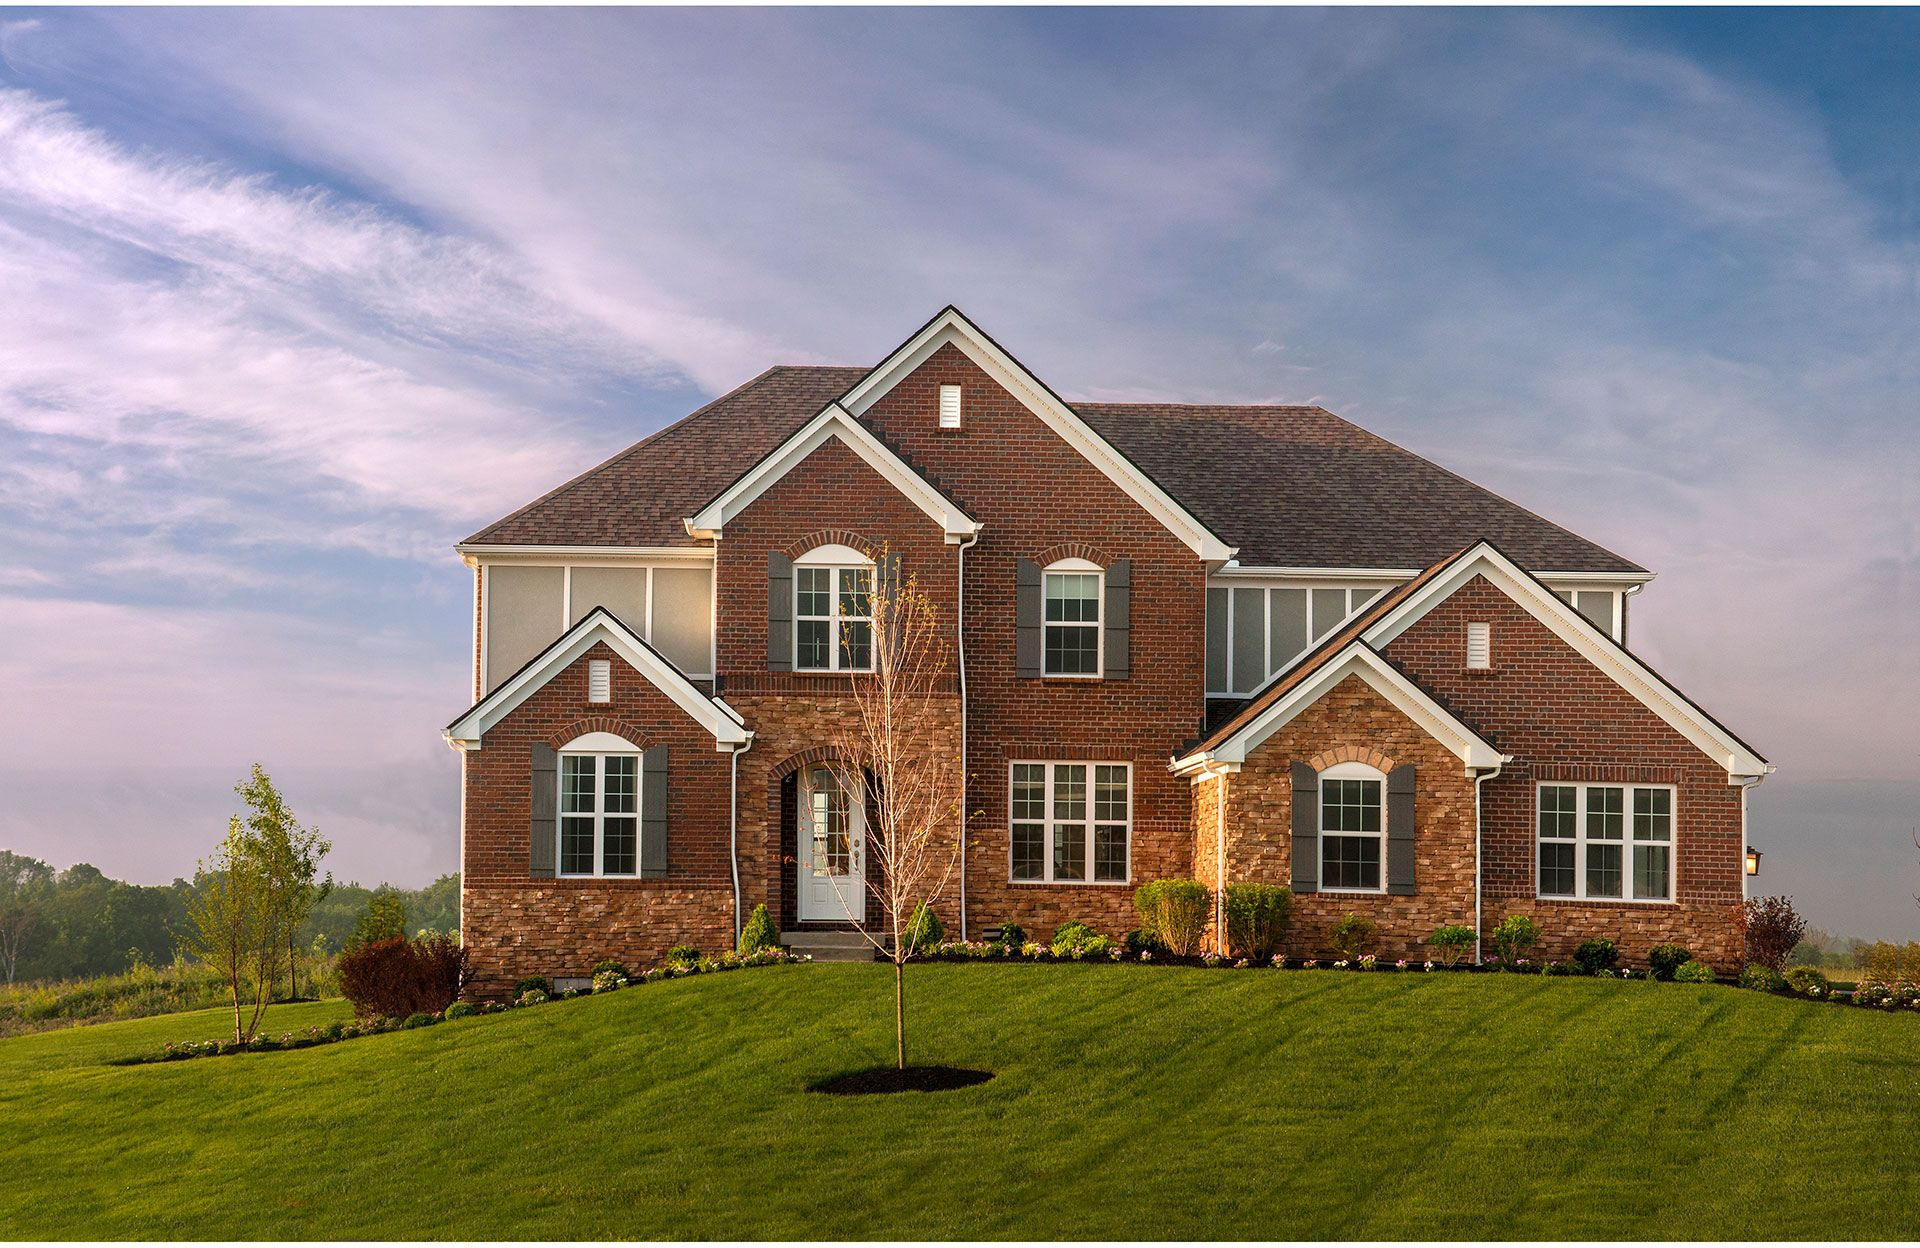 This is Actually the New Image Of Patio Homes for Sale Union Ky